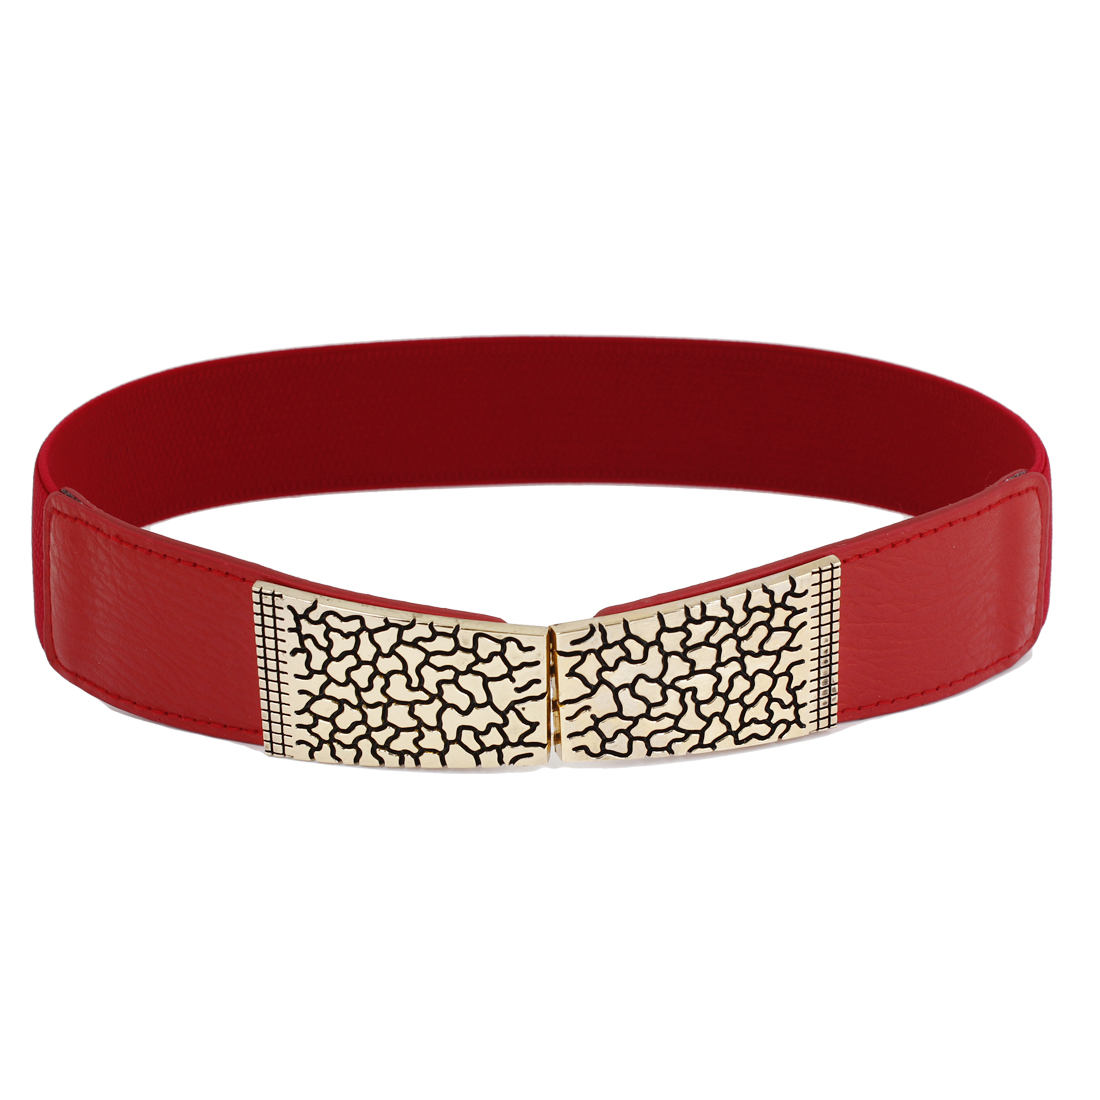 Gold Tone Crack Design Interlock Buckle Waist Cinch Belt Red for Women